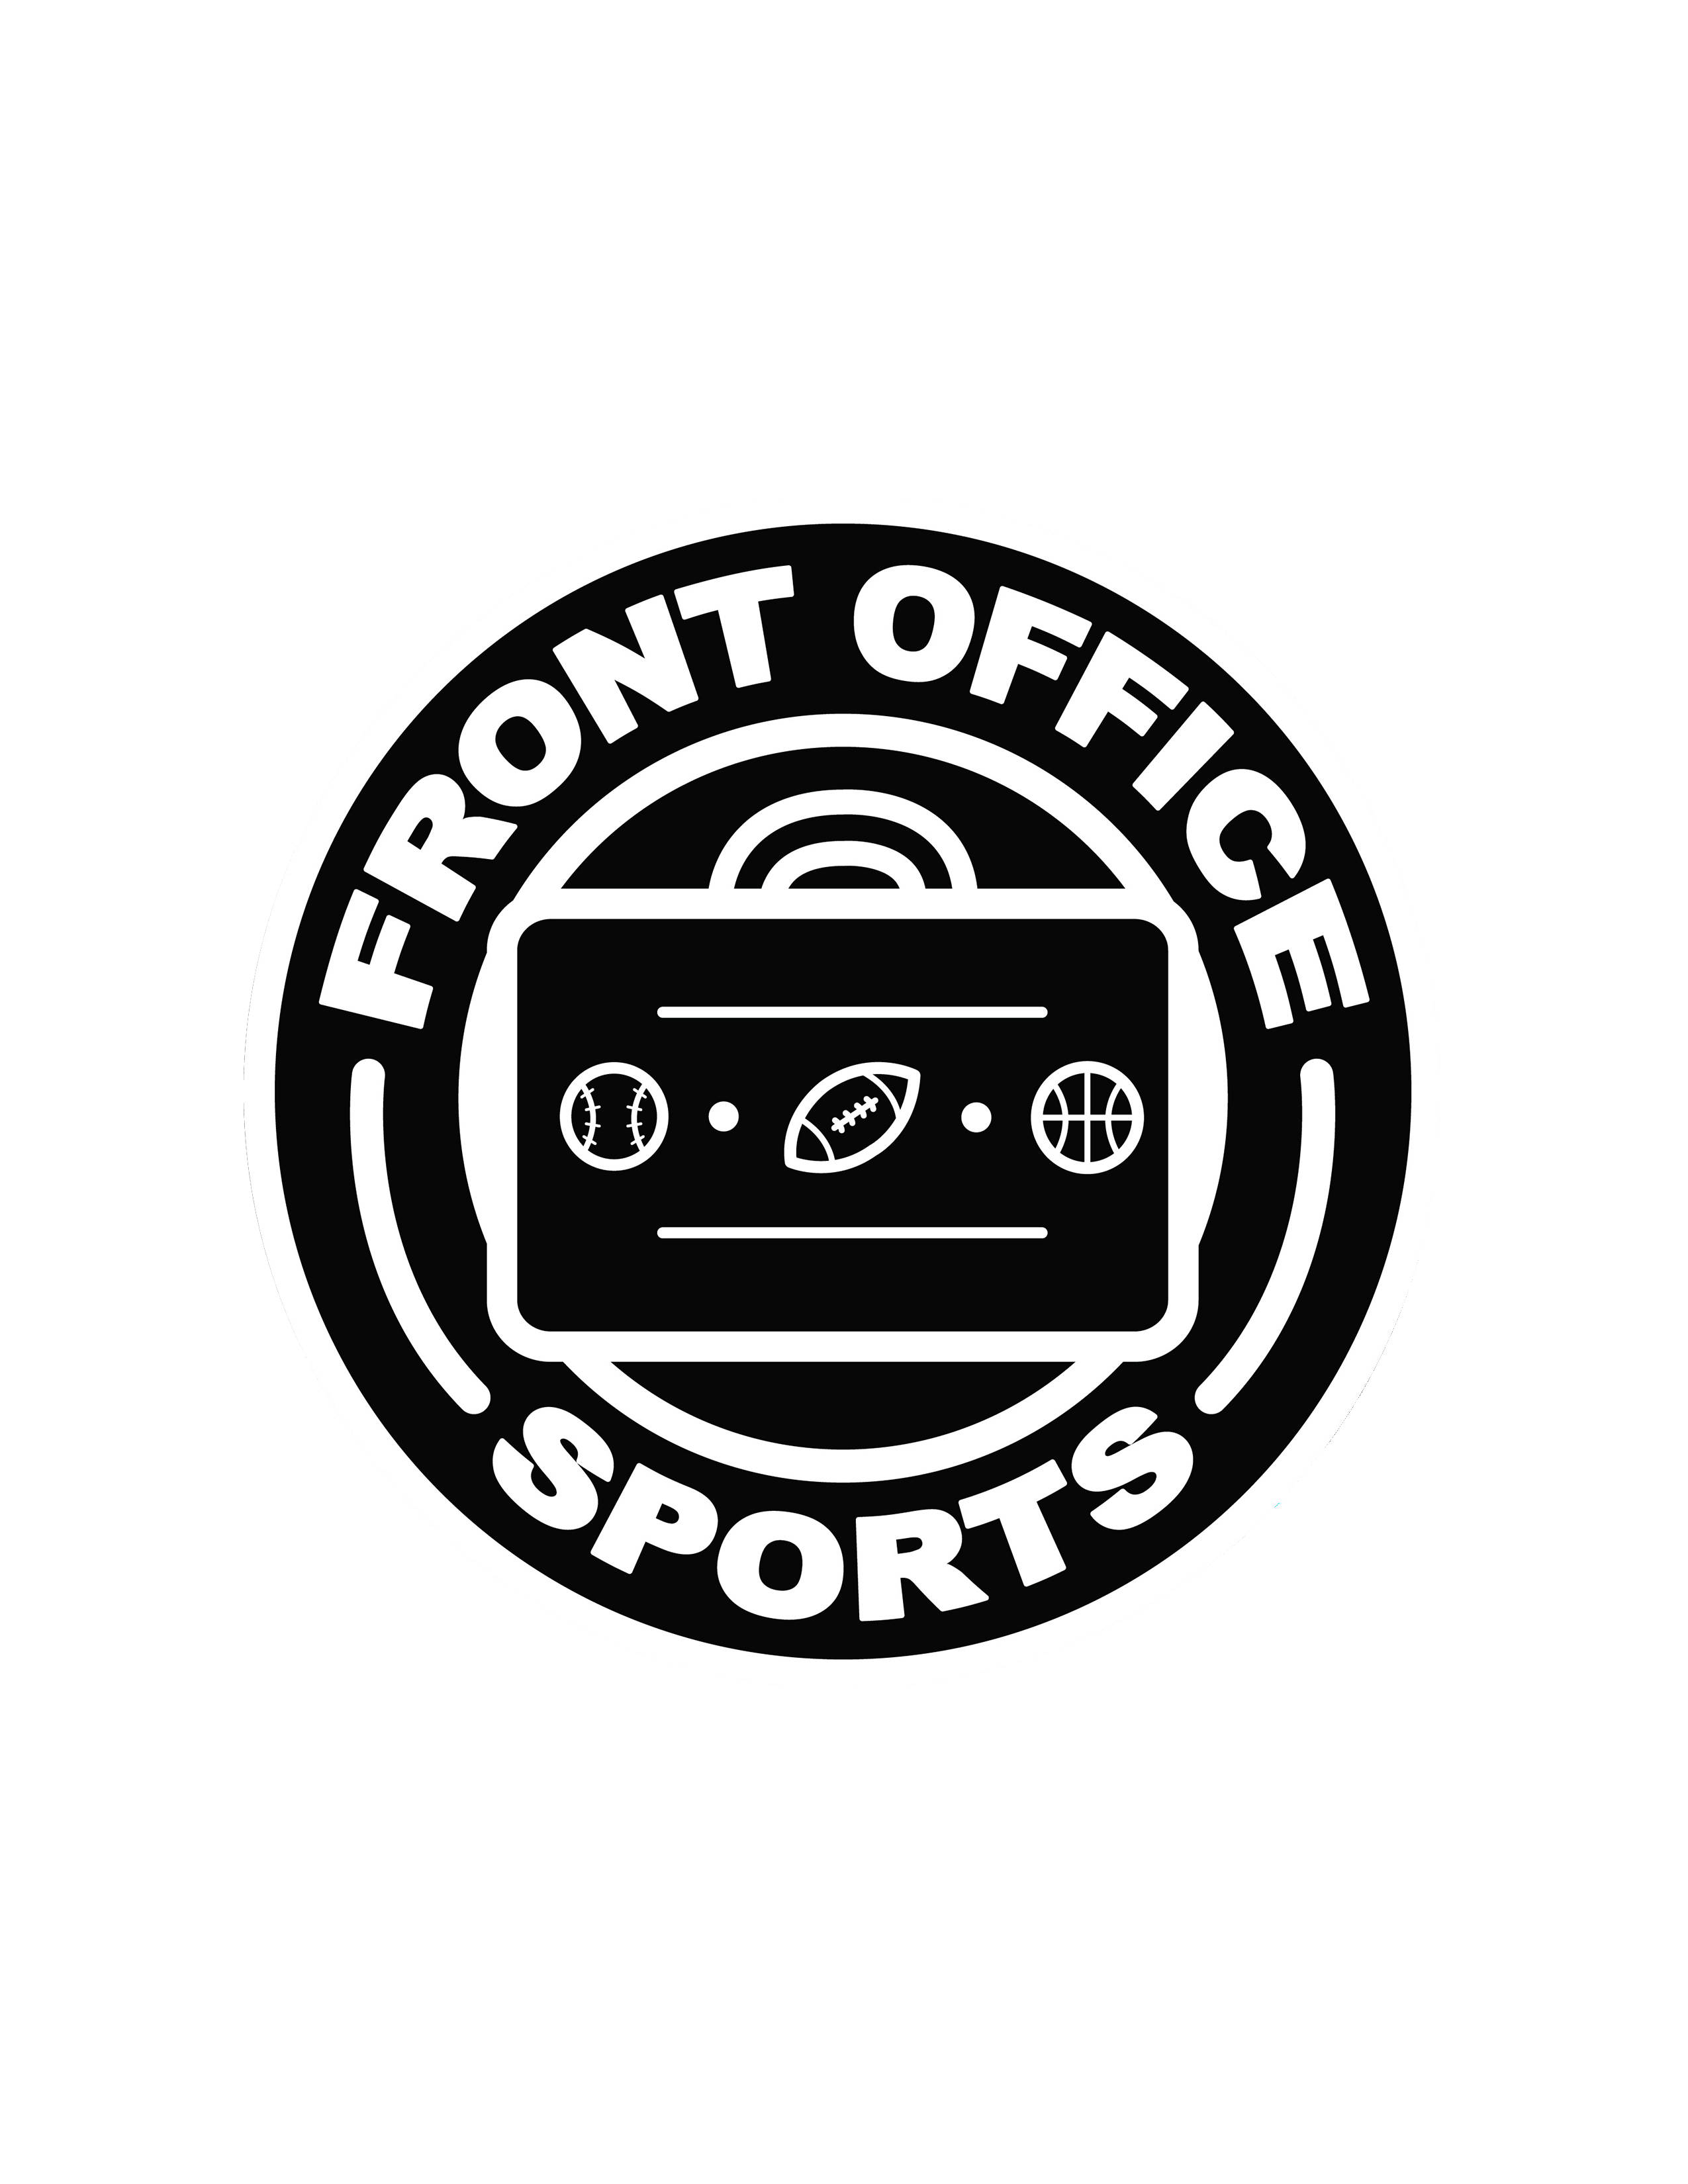 Avatar - Front Office Sports